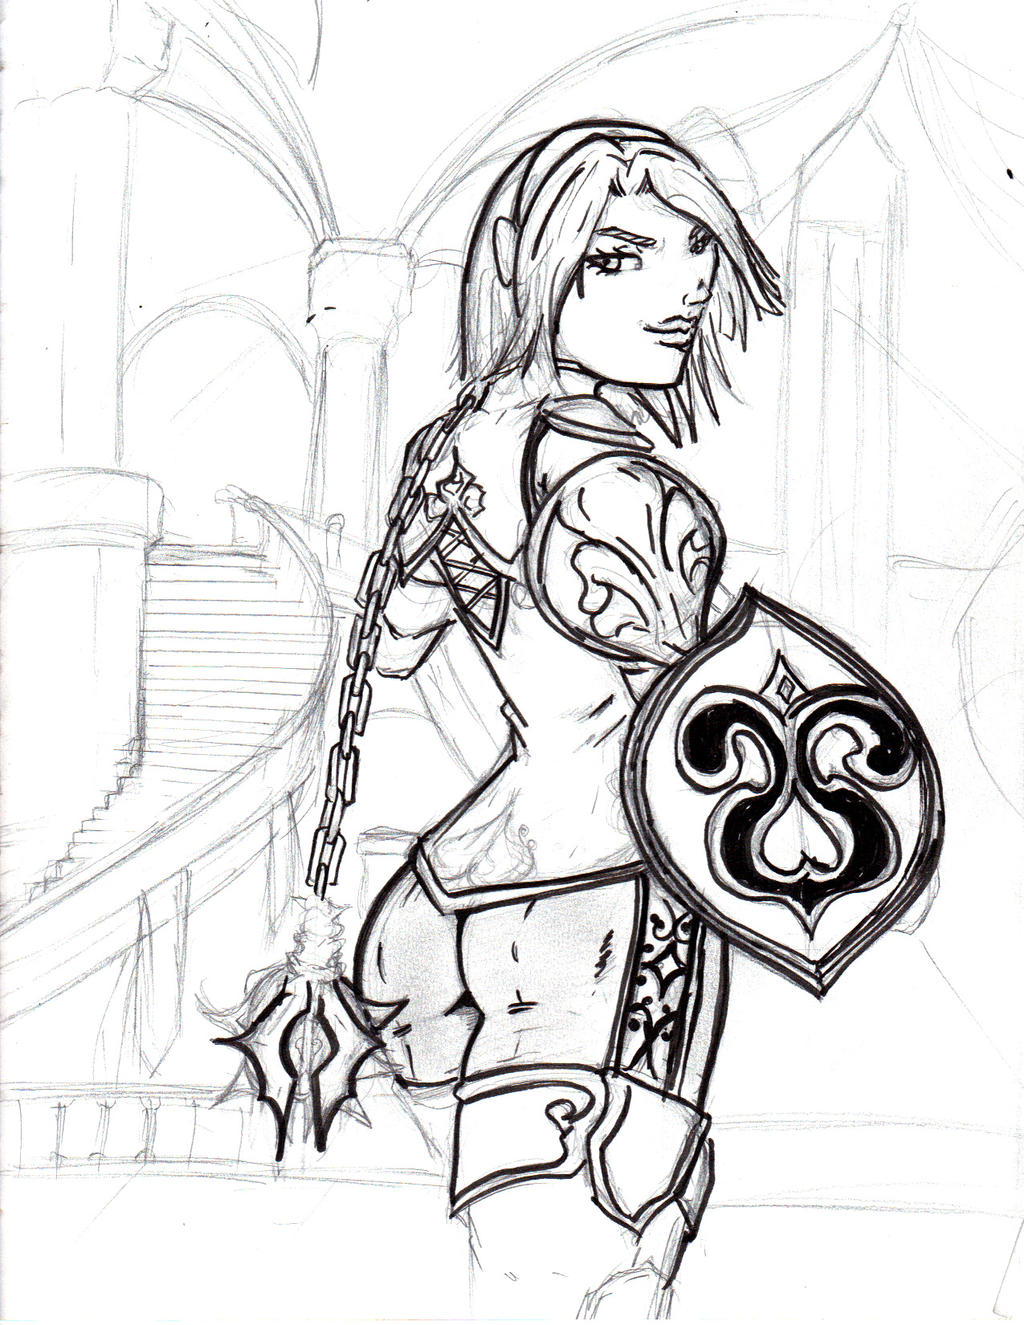 a redesign of Cassandra from soul calibur by jesusjr